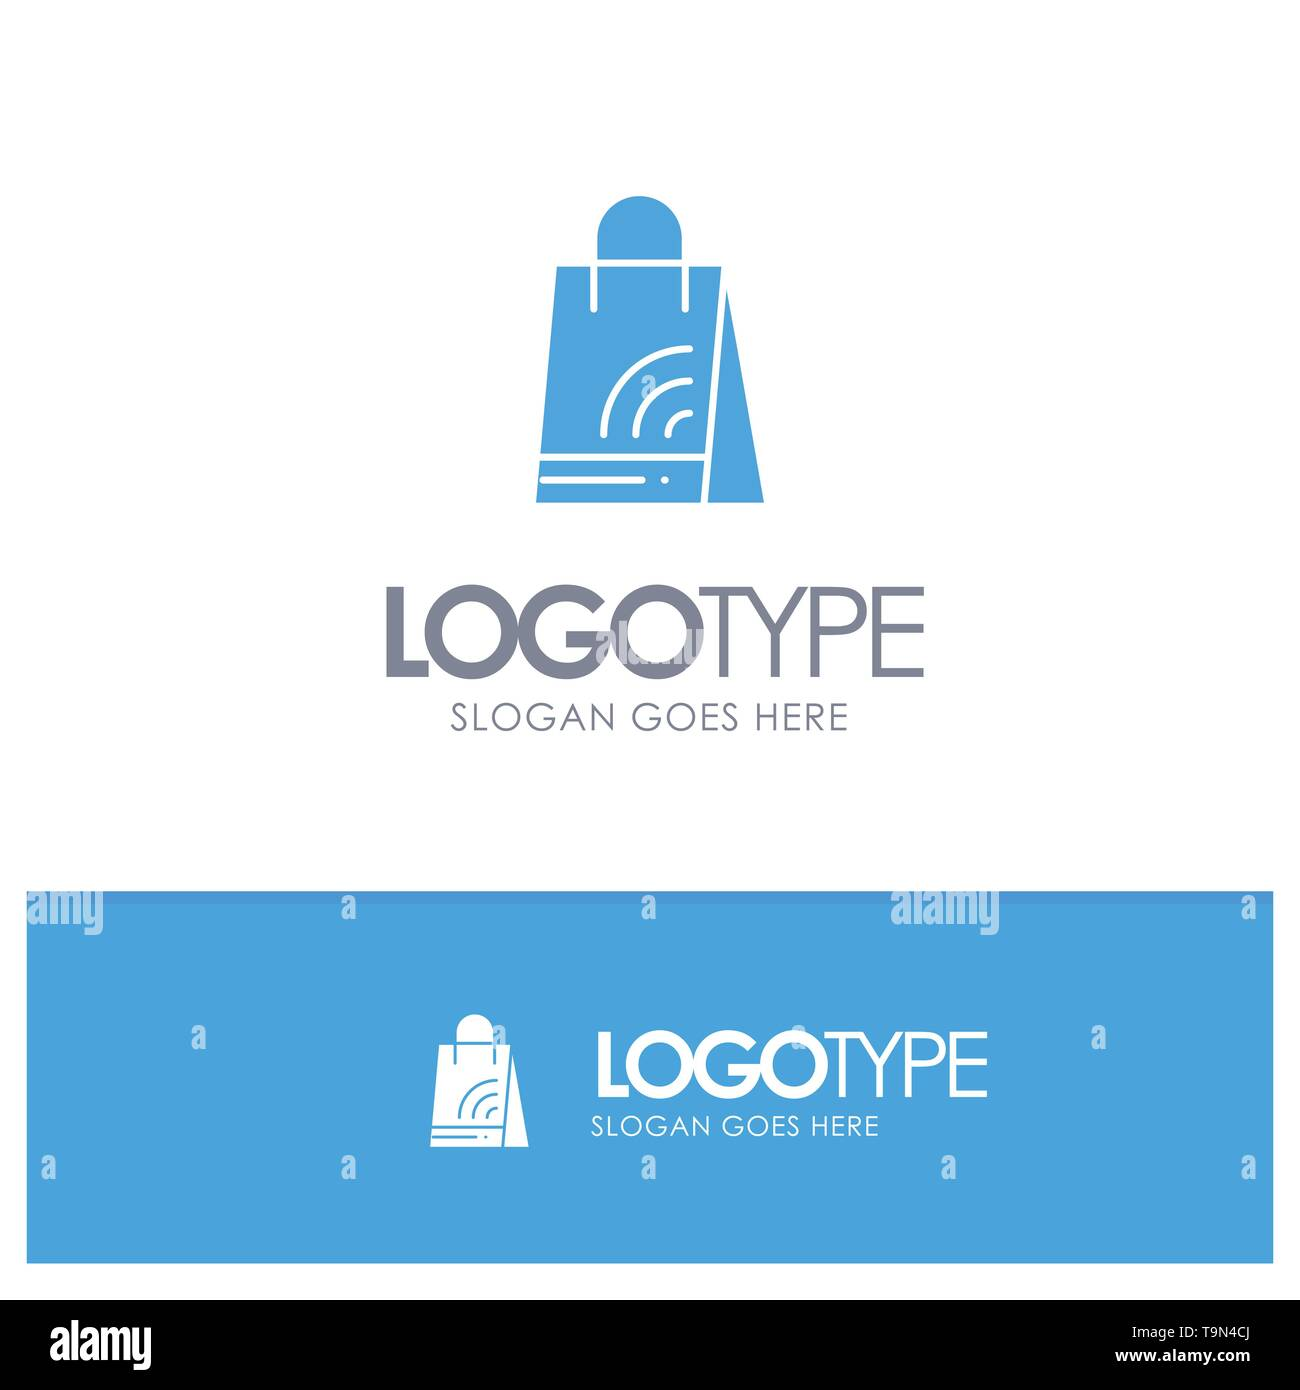 Bag, Handbag, Wifi, Shopping Blue Solid Logo with place for tagline - Stock Image